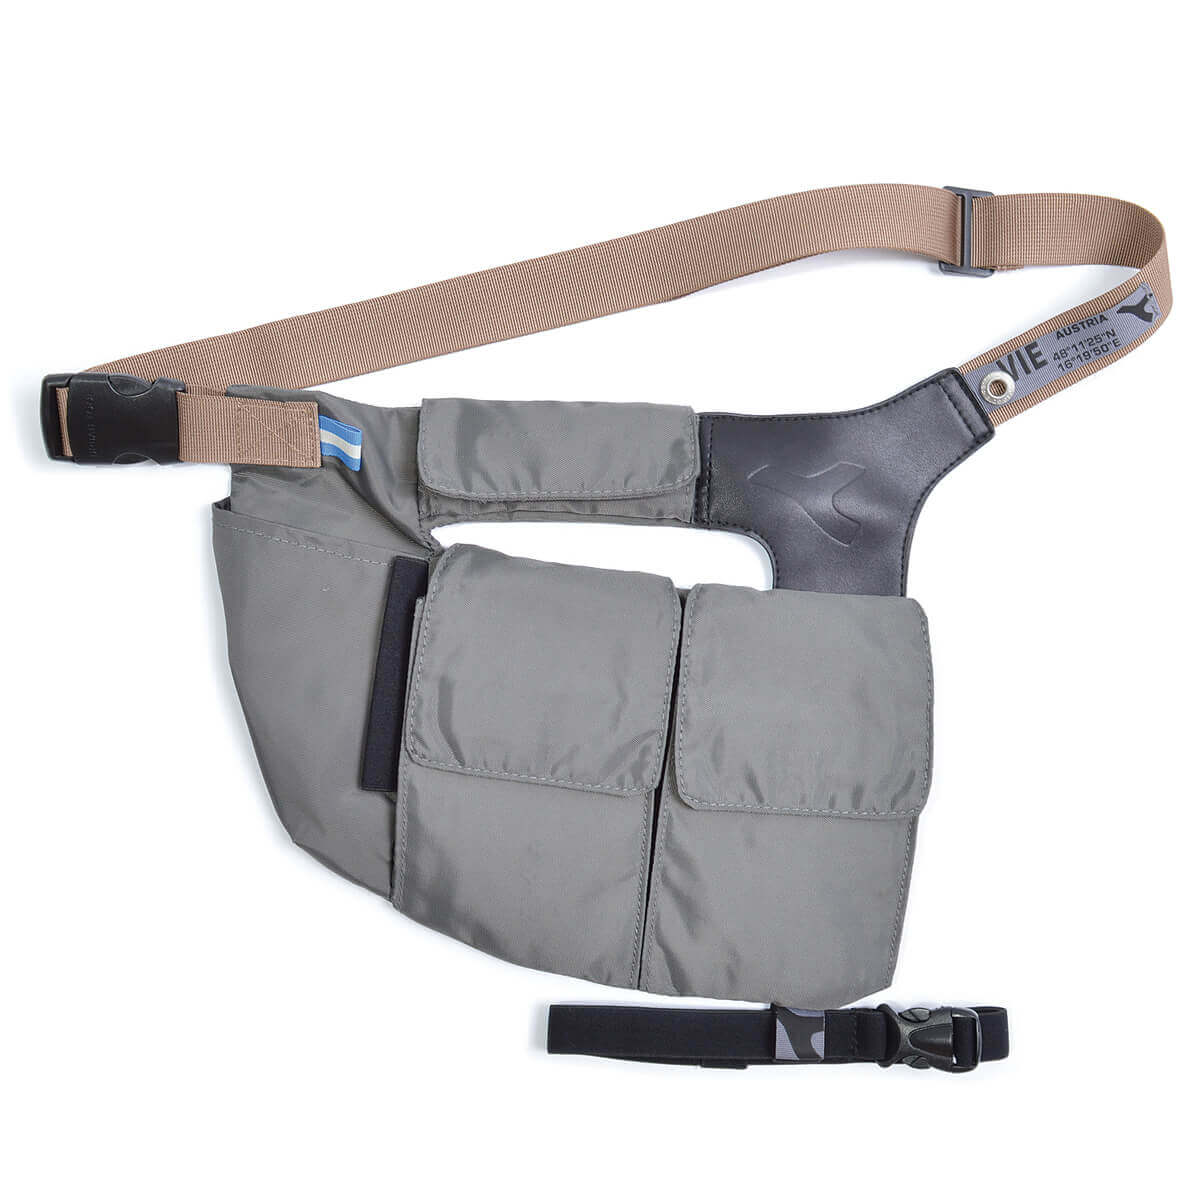 Waist pack bag for smartphones and wallet URBAN TOOL ® waistholster